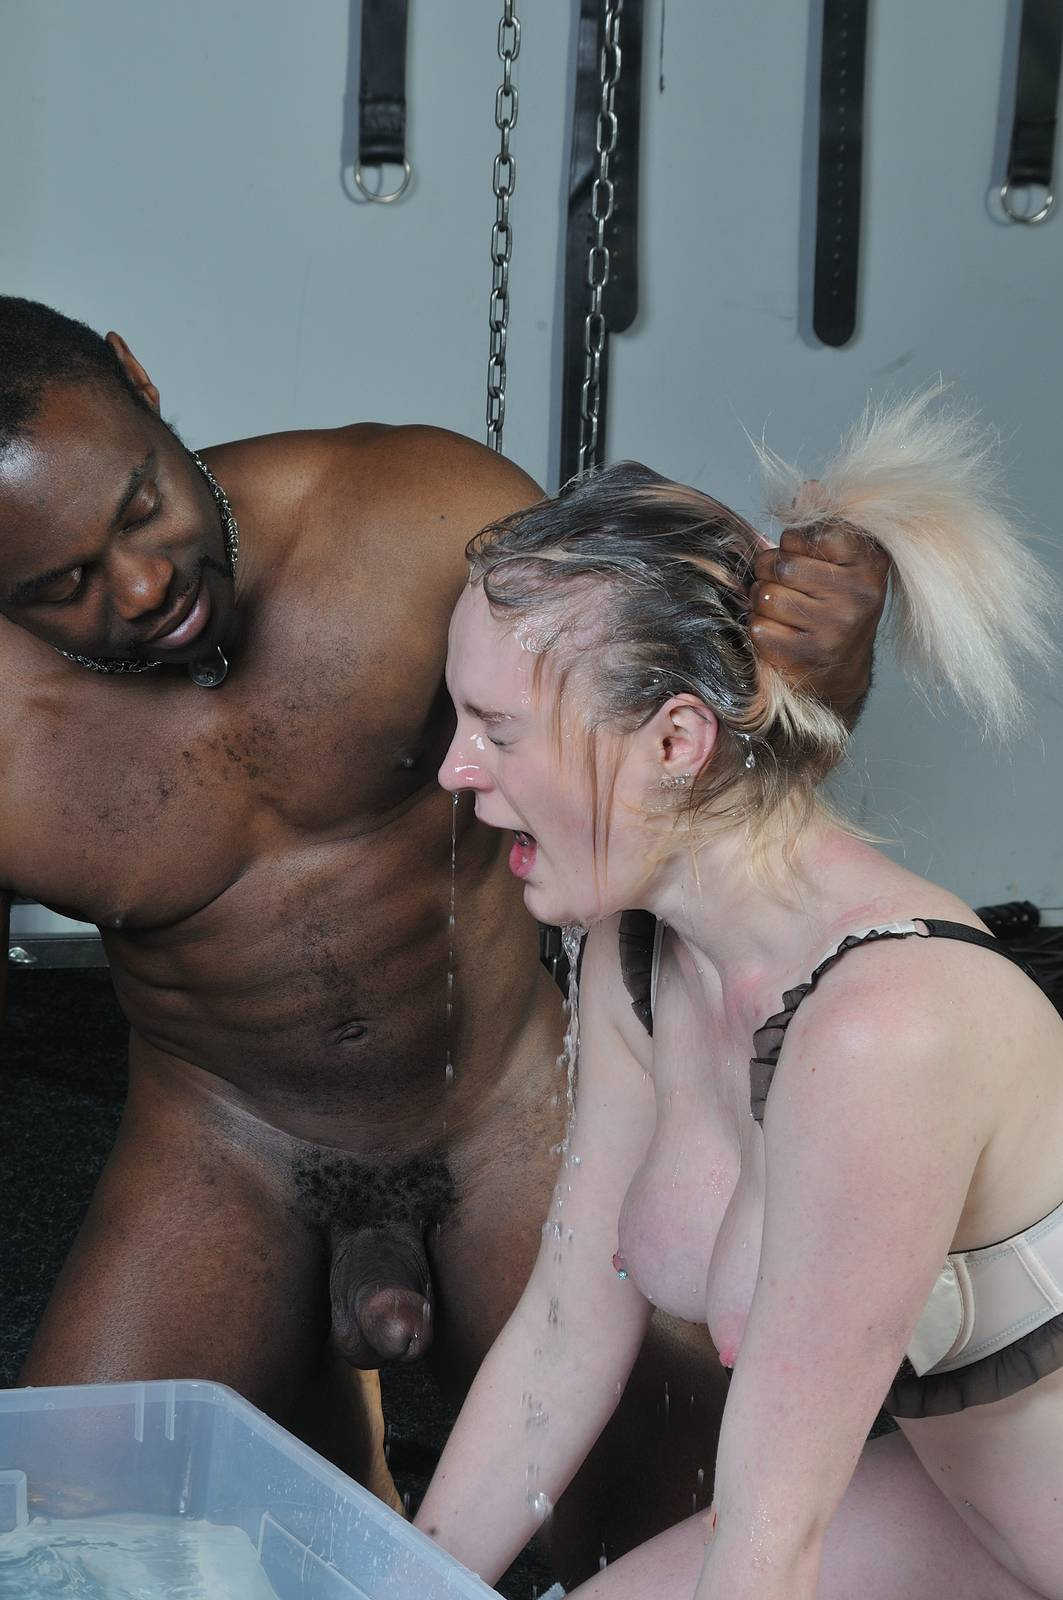 Sex bdsm interracial anal